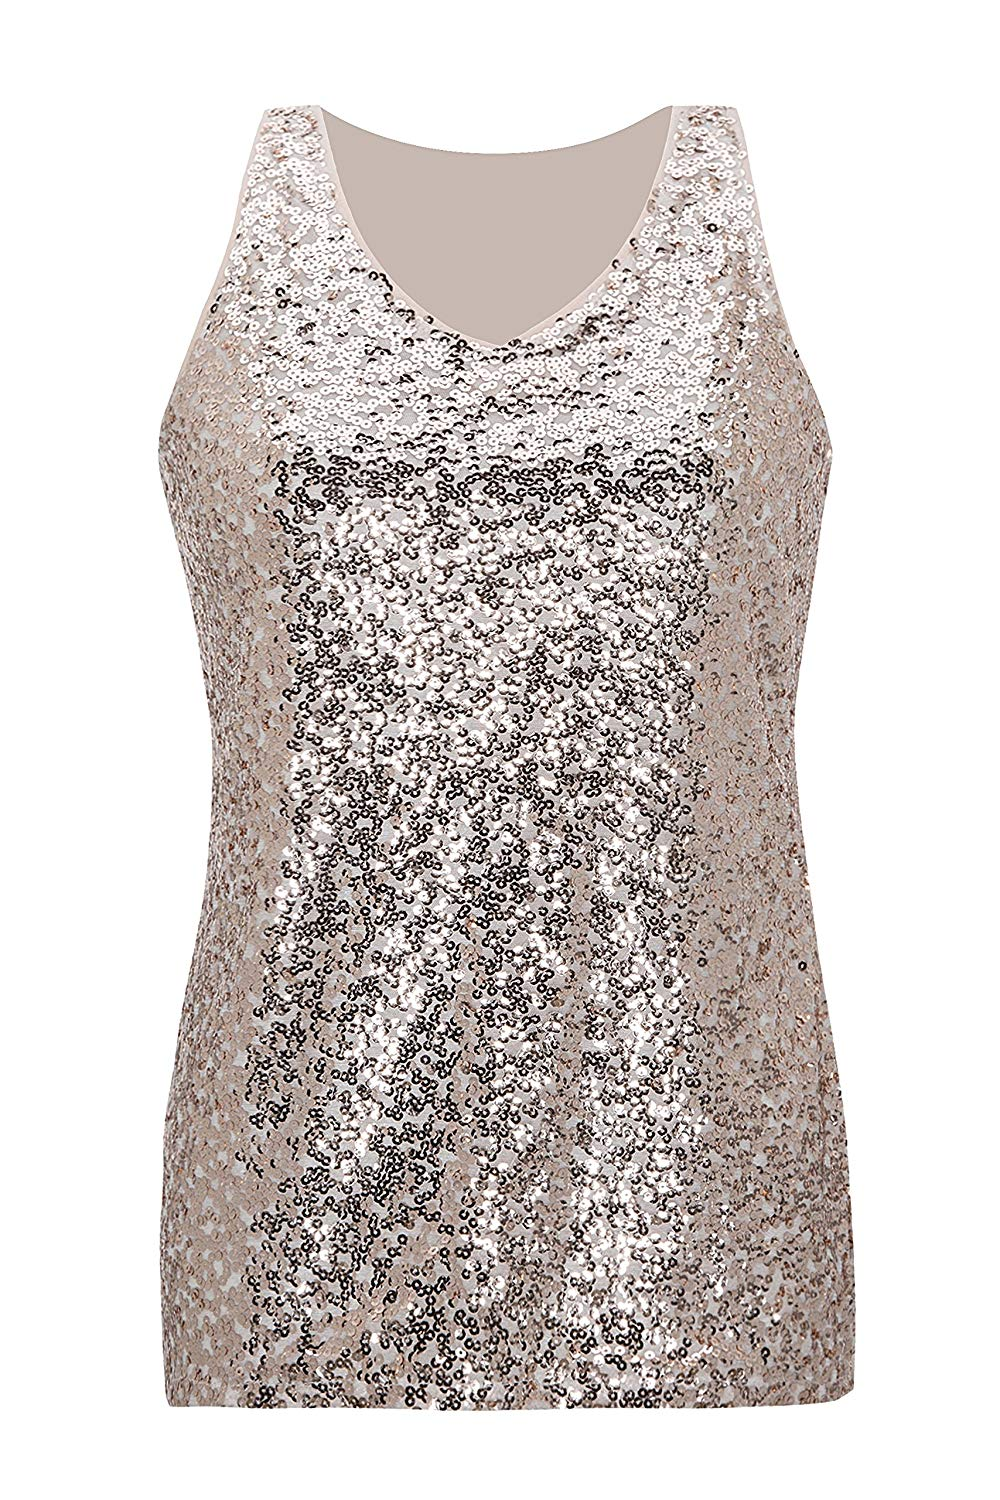 356c56b7 Get Quotations · Metme Sleeveless Shirt V Neck Sequin Embellished  Close-Fitting Tank Tops Vest Tops